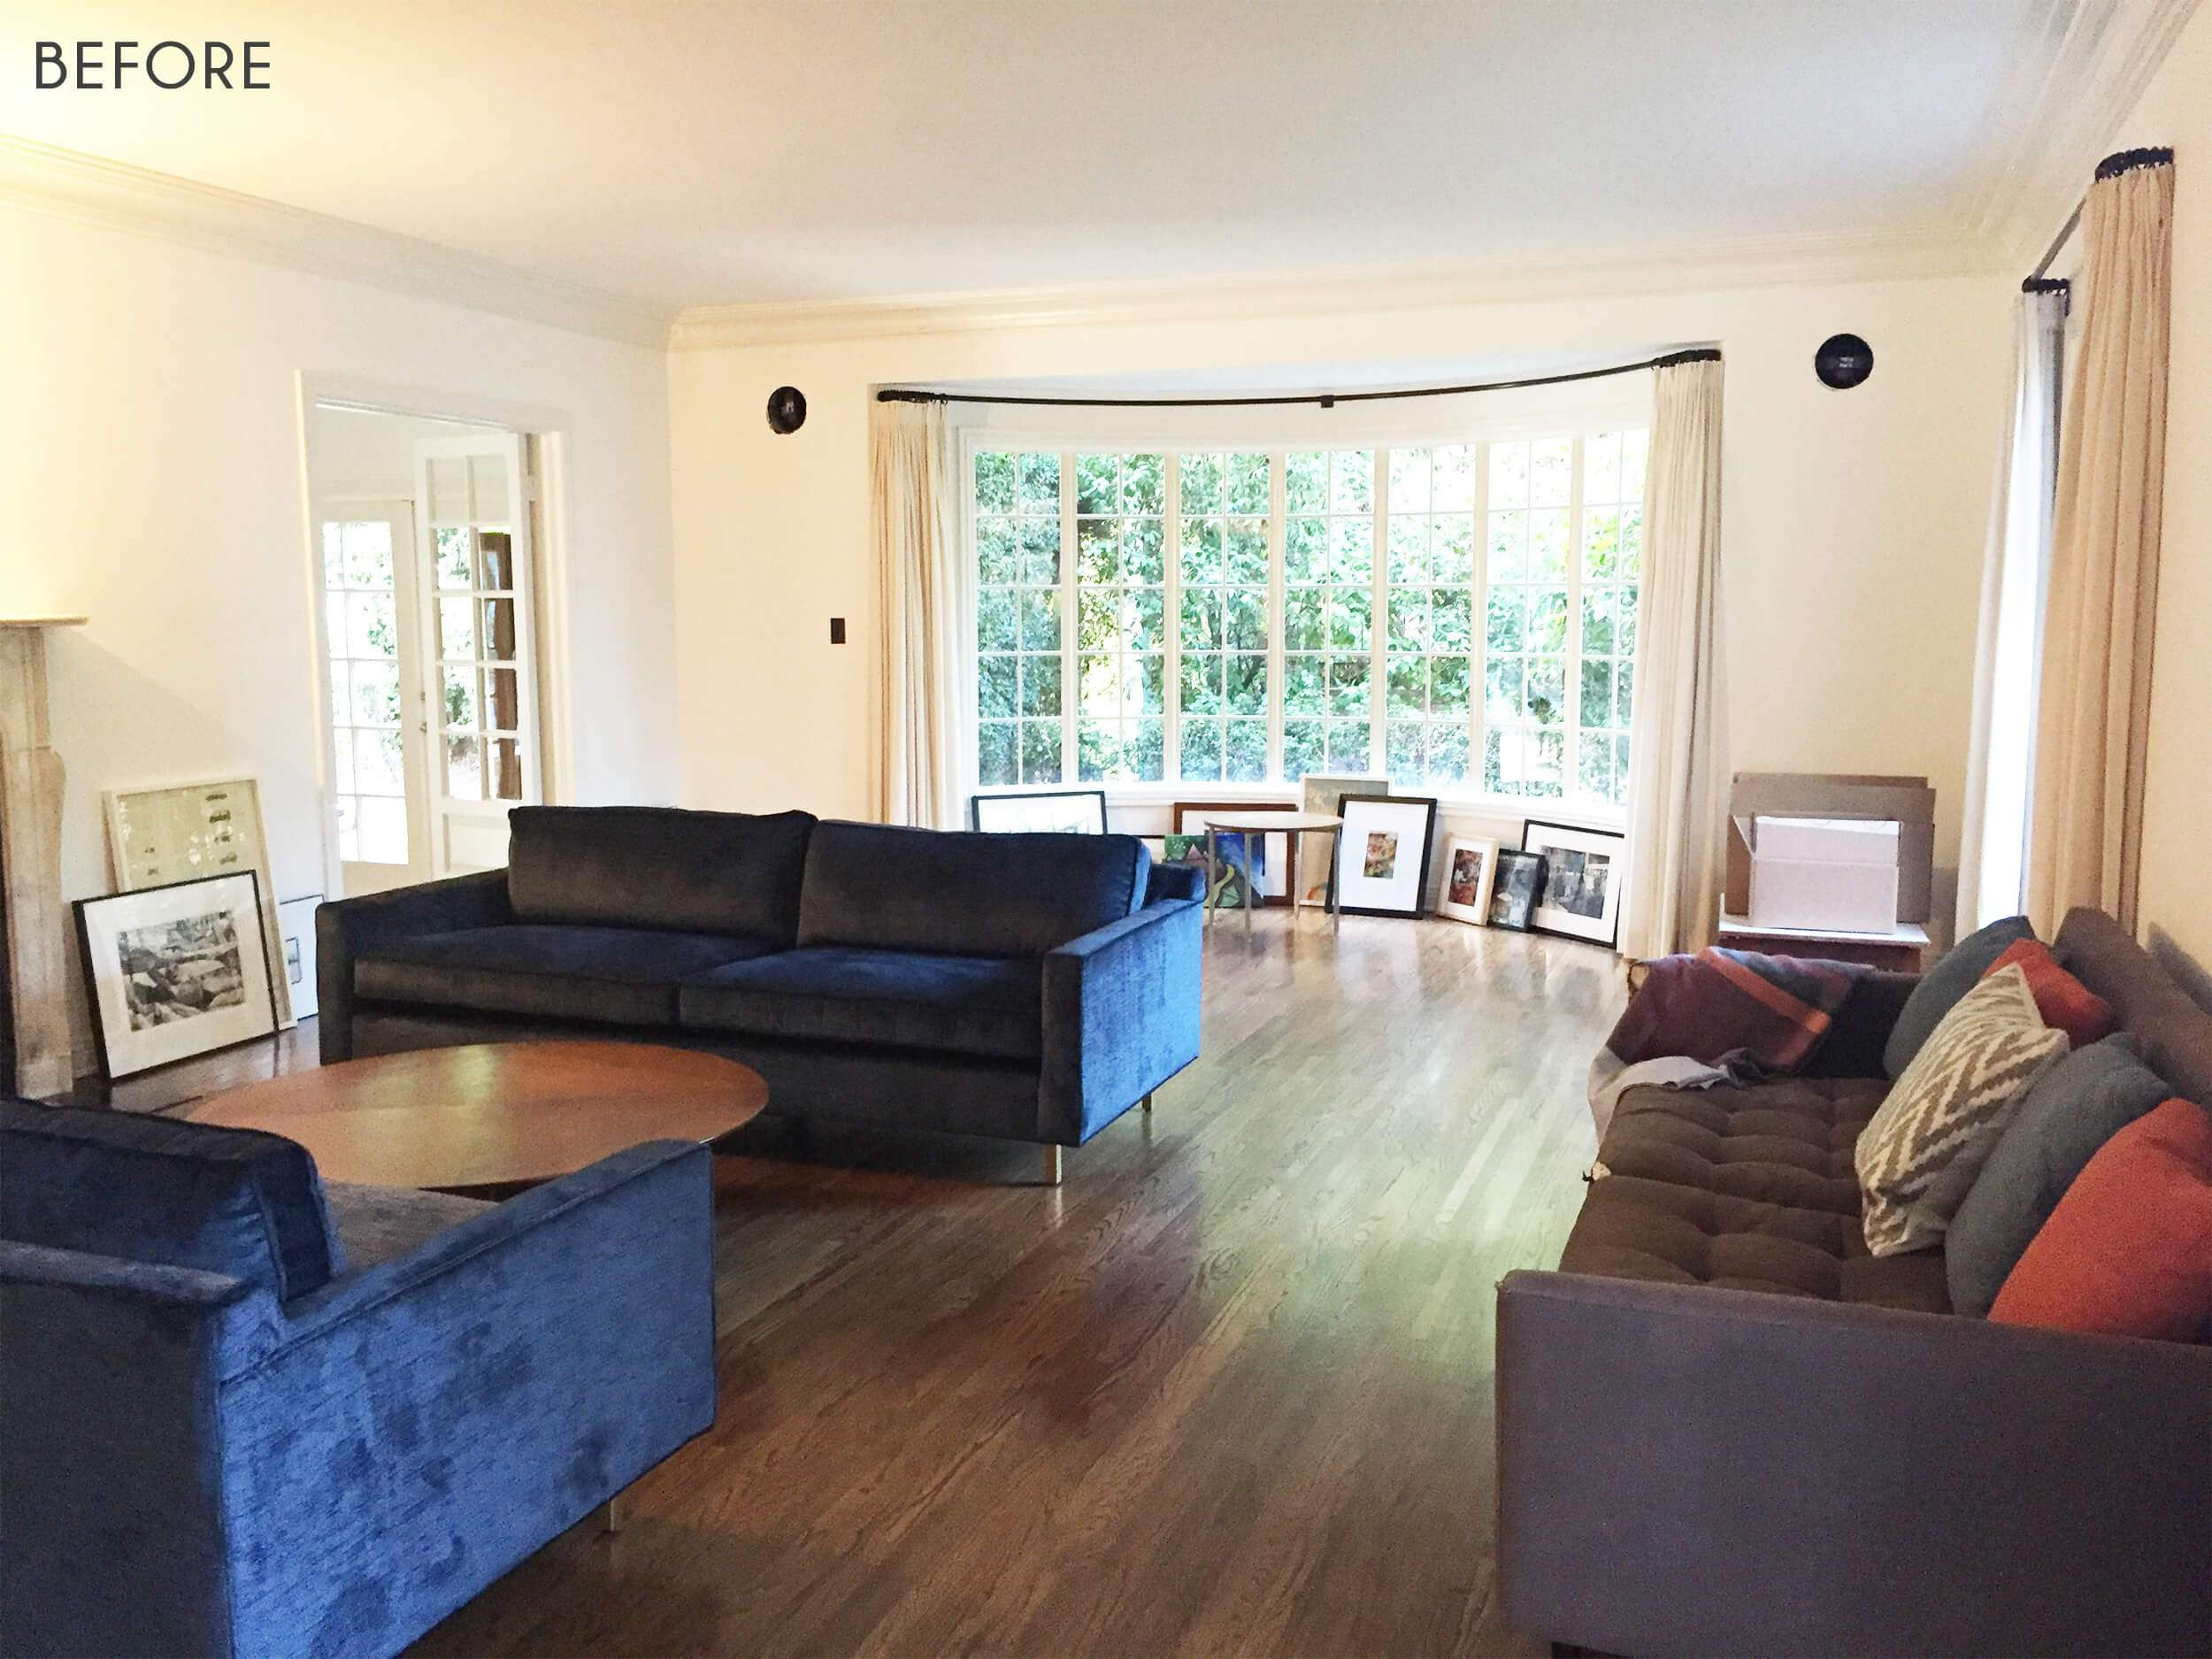 hardwood flooring spokane of payless flooring how to tile bathroom floor home ideas floor in payless flooring living room traditional decorating ideas awesome shaker chairs 0d